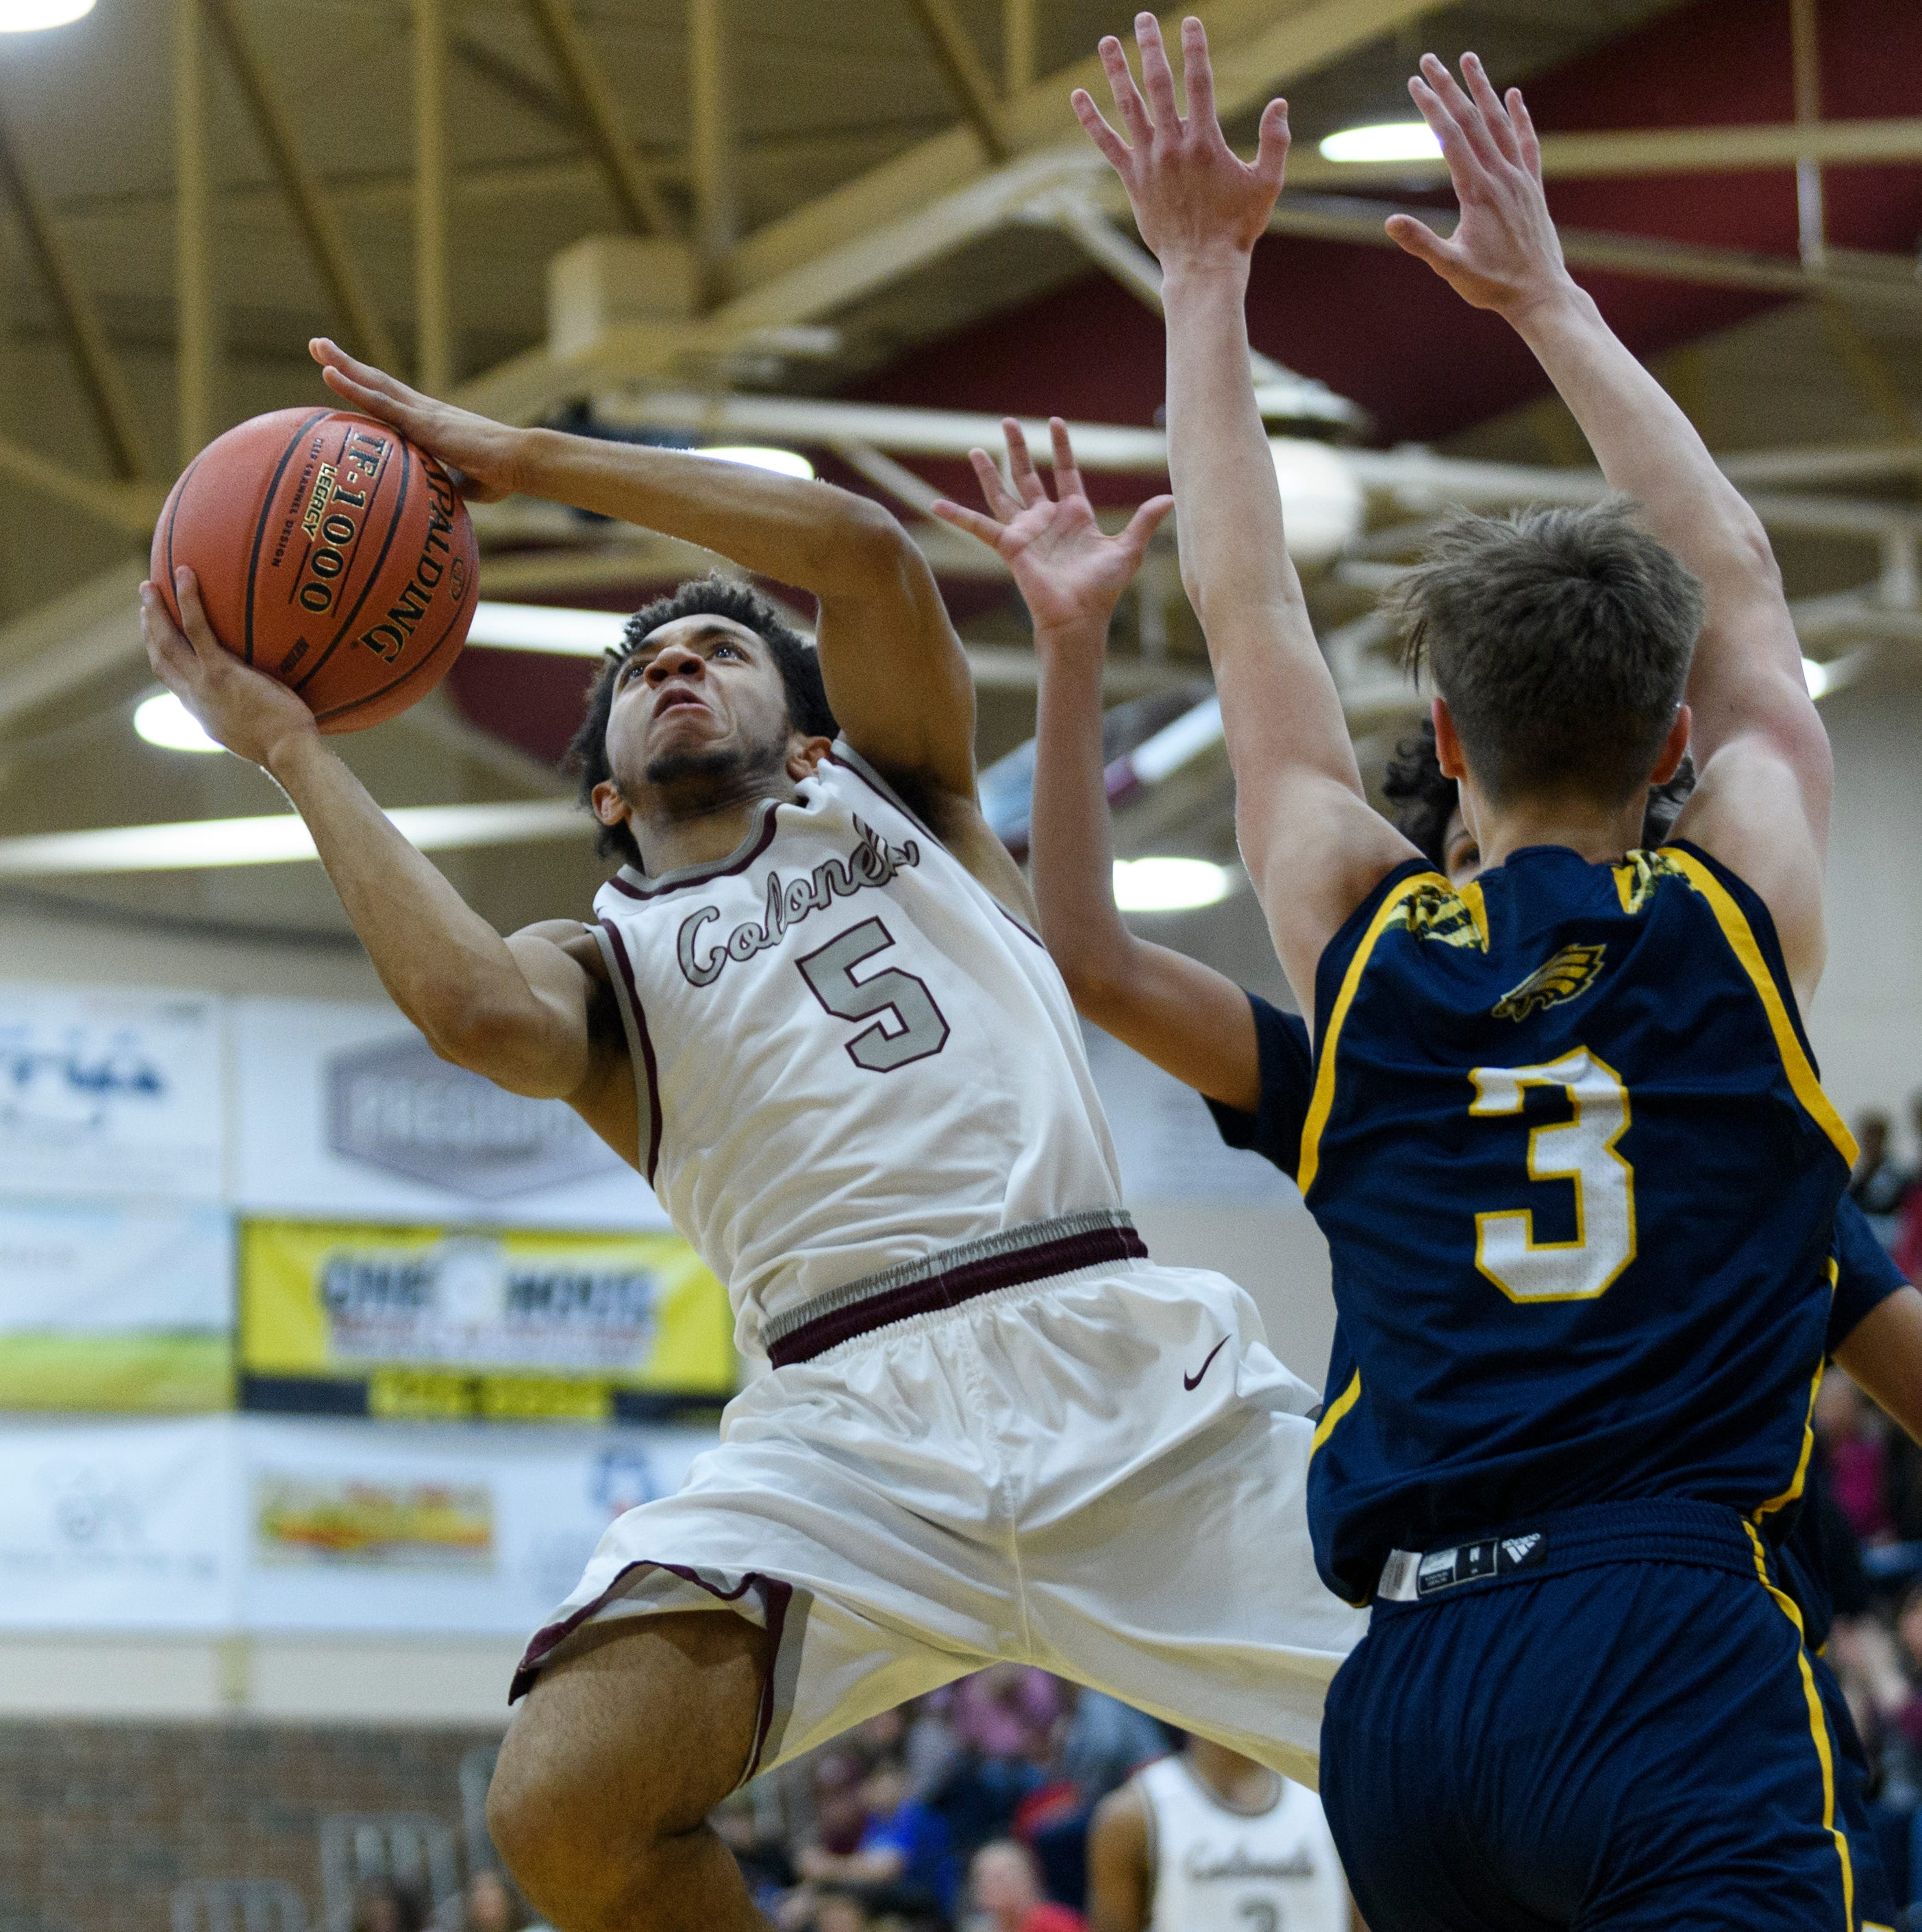 Henderson County uses mix of 3-pointers and transition baskets to remain unbeaten